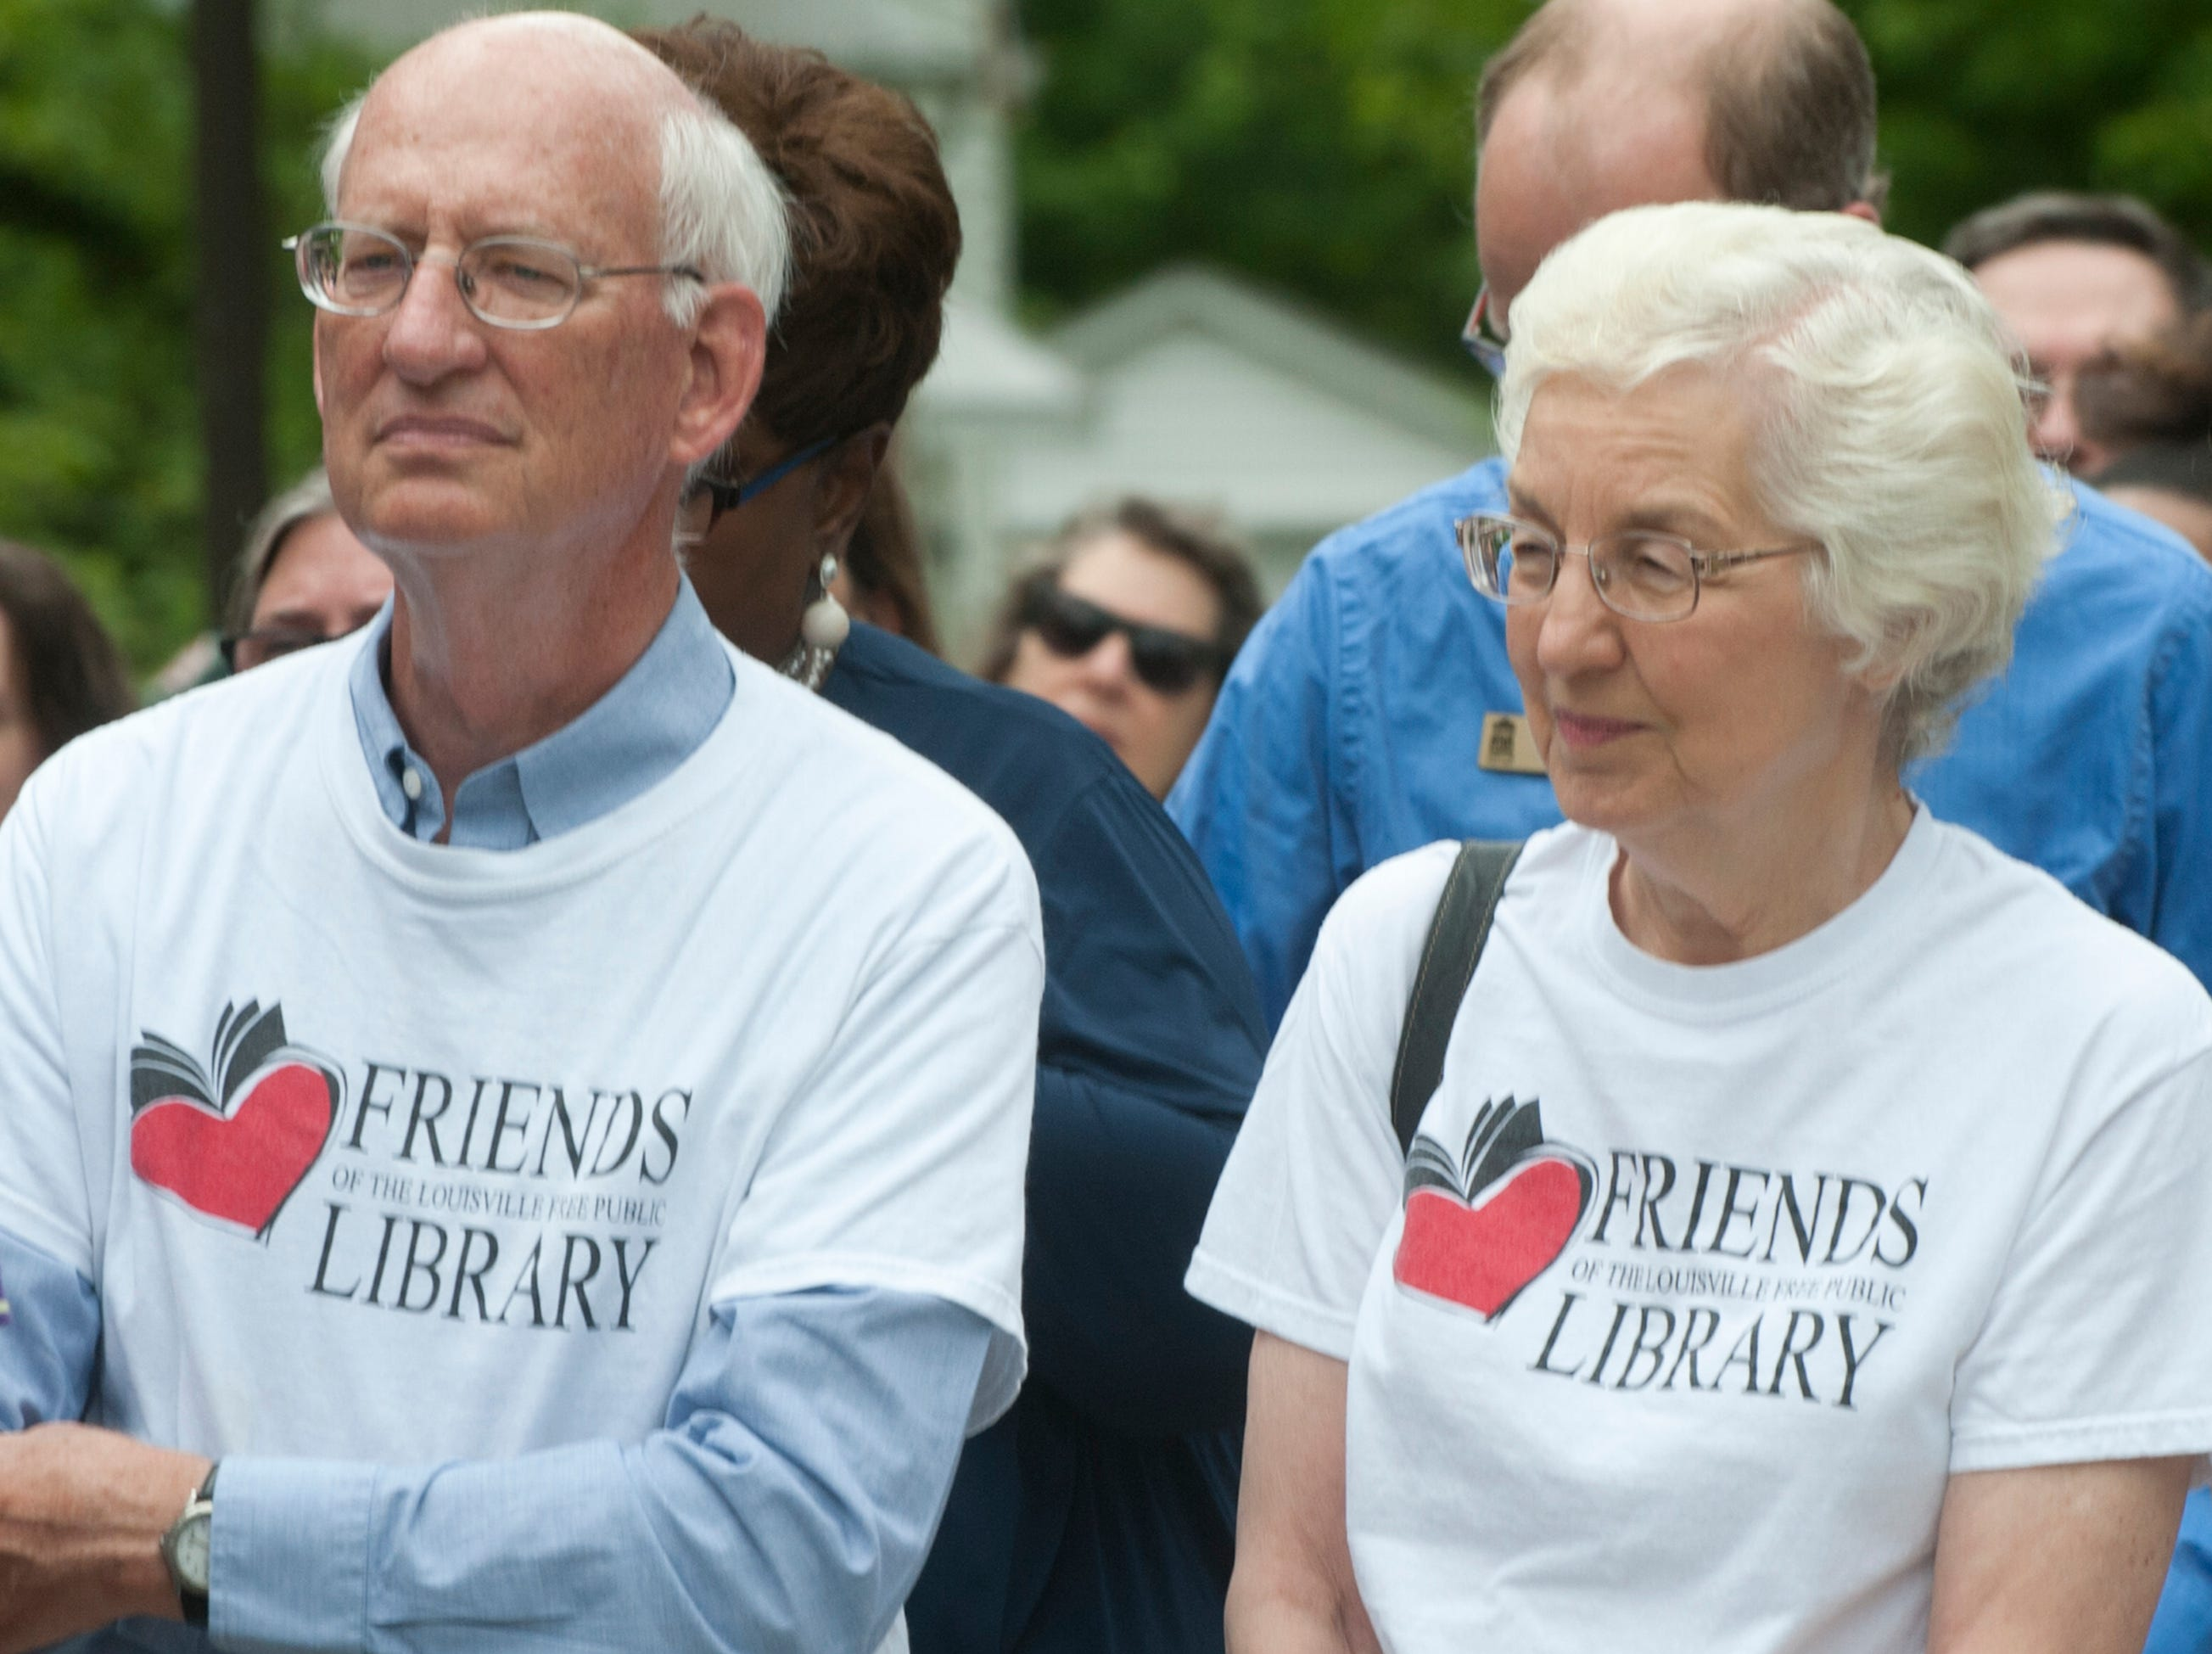 St. Matthew Friends of the Libarary President Gary Luhn and his wife, Jeanne, listen to speakers at the grand reopening of the library. May 9, 2019